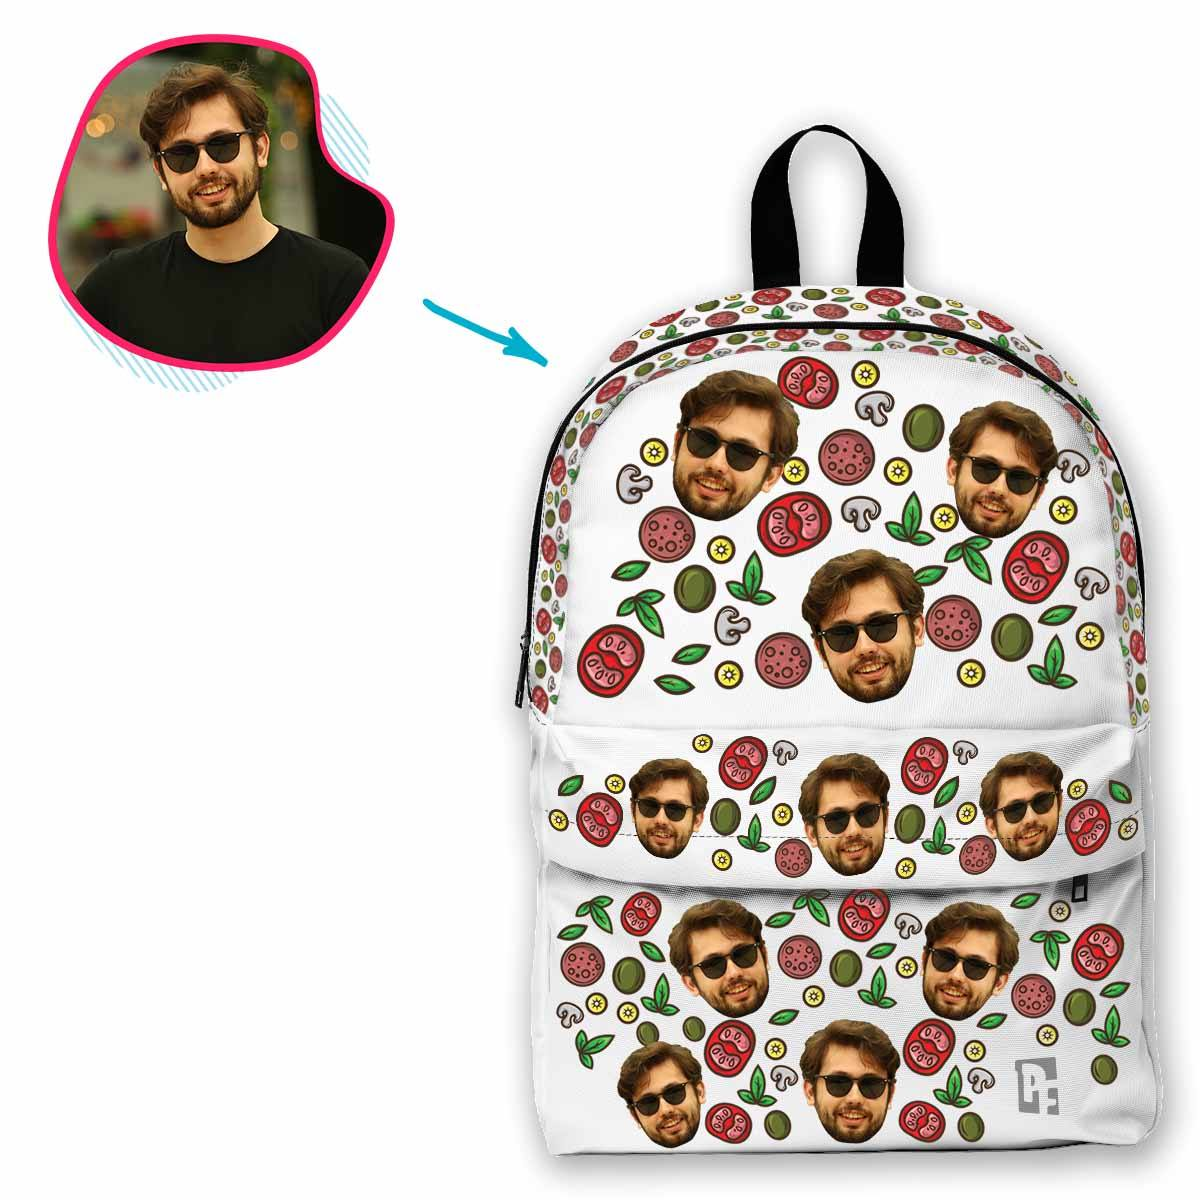 white Pizza classic backpack personalized with photo of face printed on it